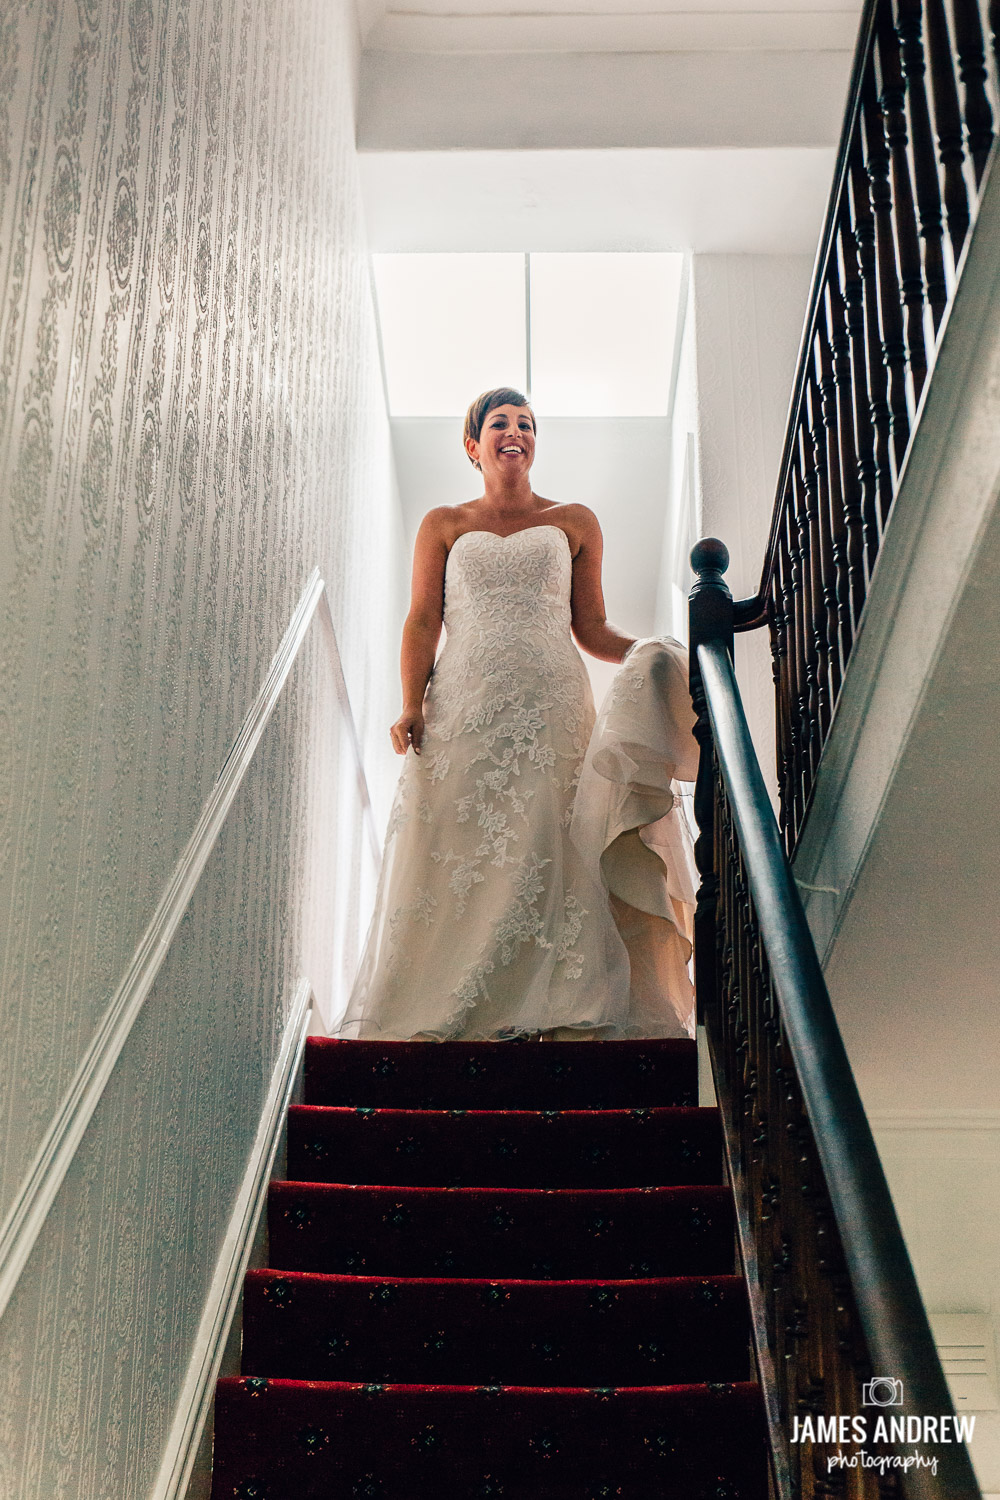 bride in wedding dress at the top of staircase bright light